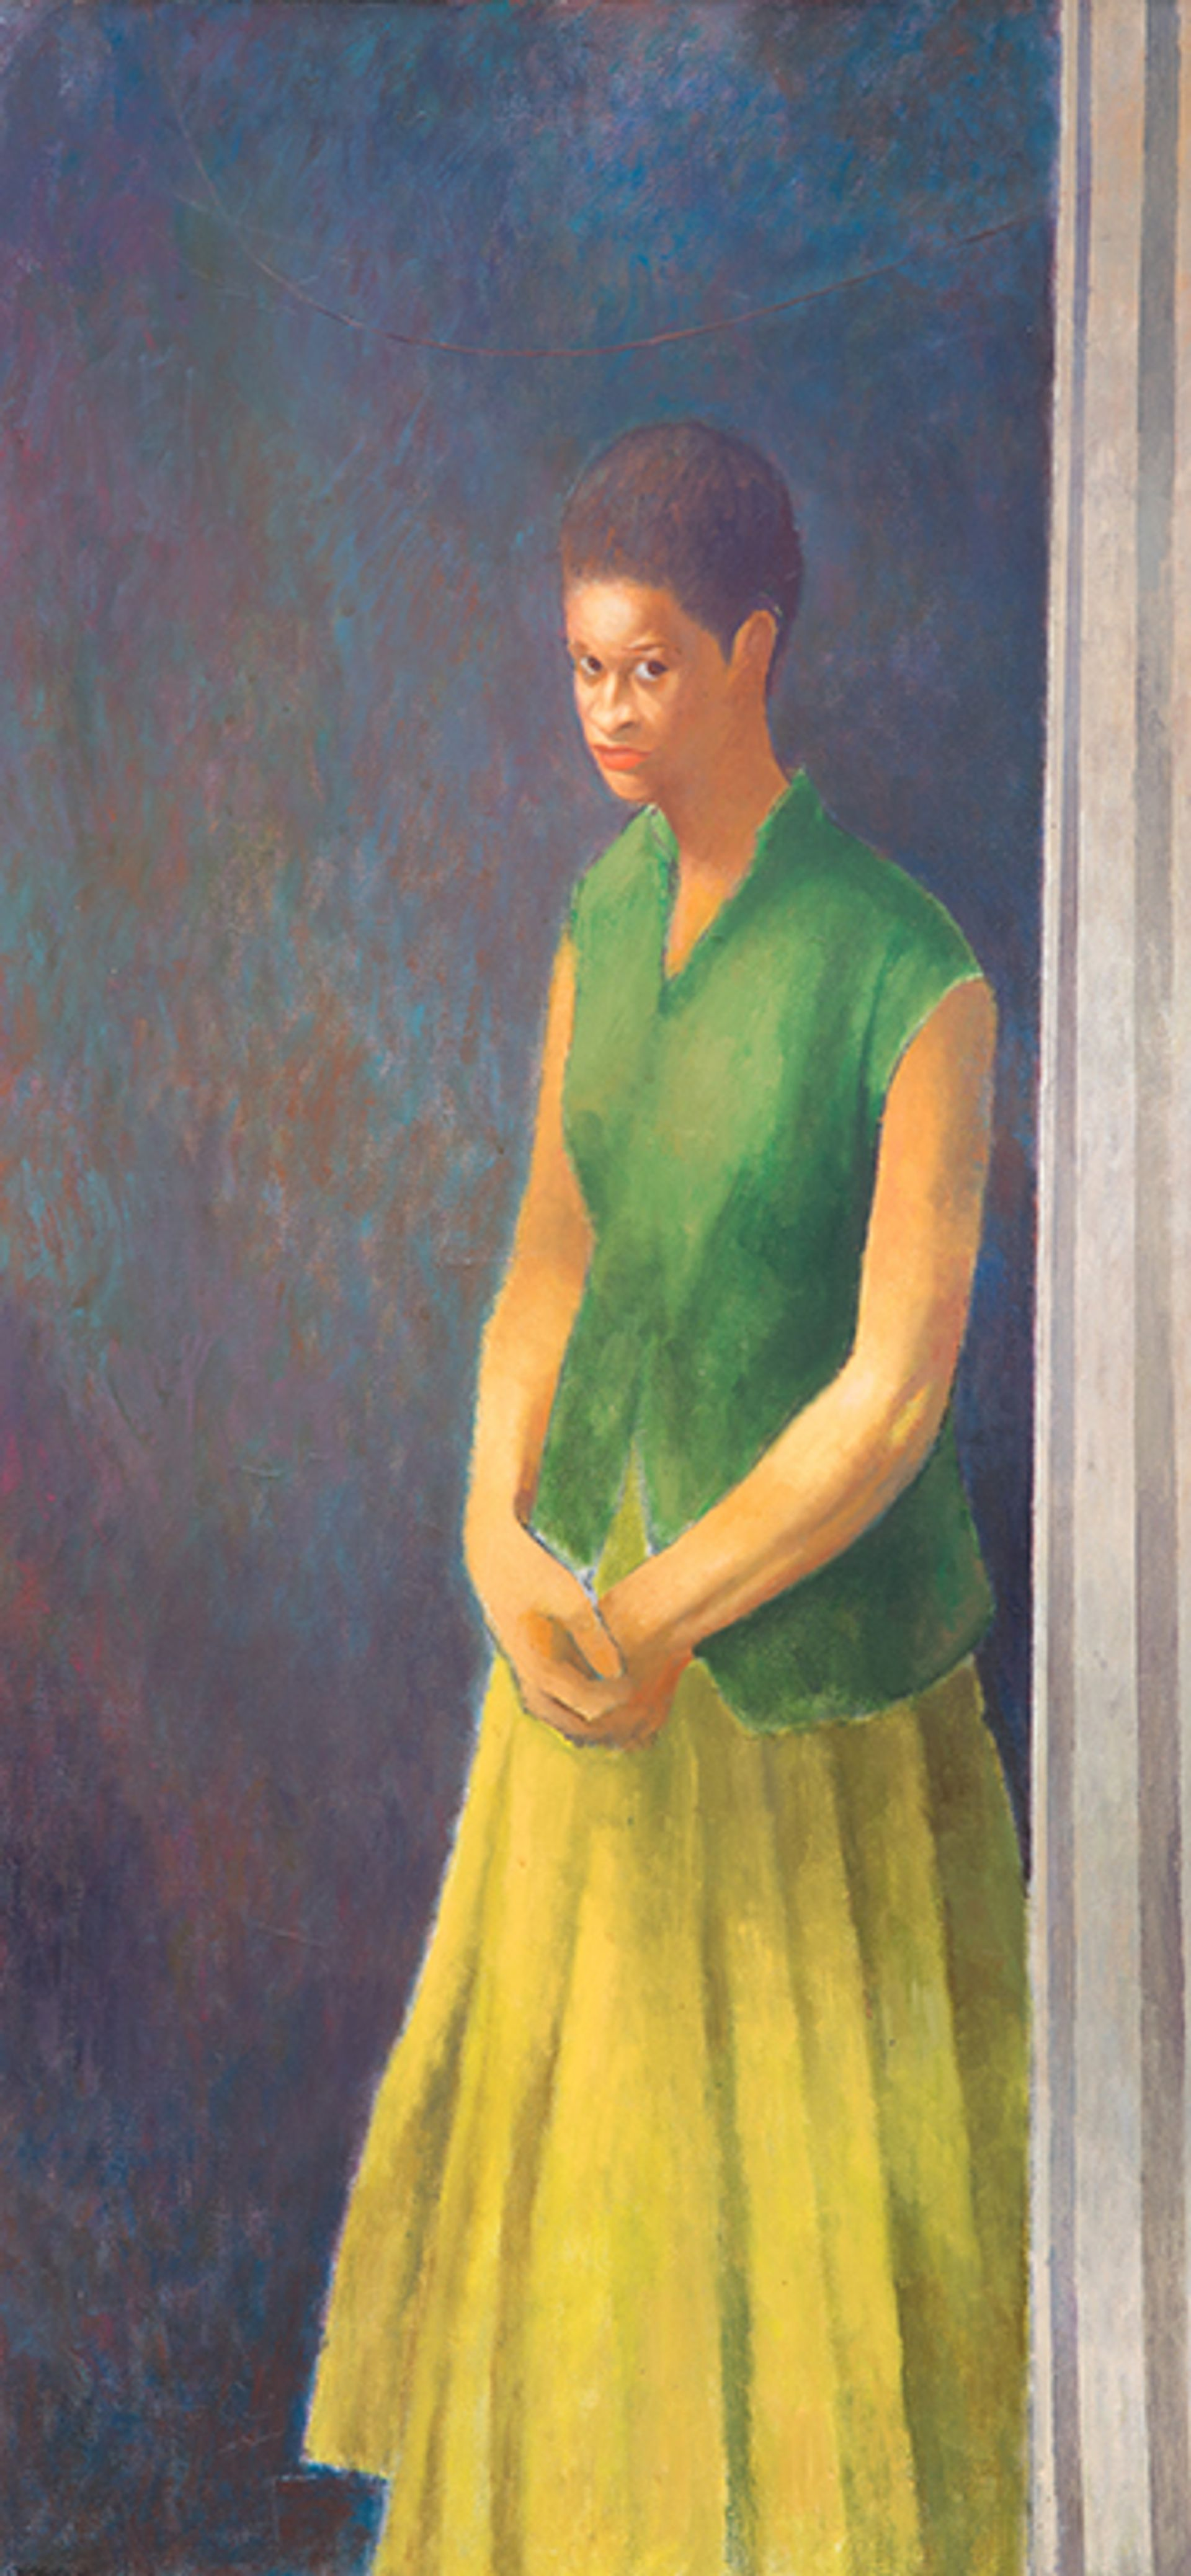 Charles White's Young Woman (Unfinished Painting No. 6) from 1965-66 ACA Galleries